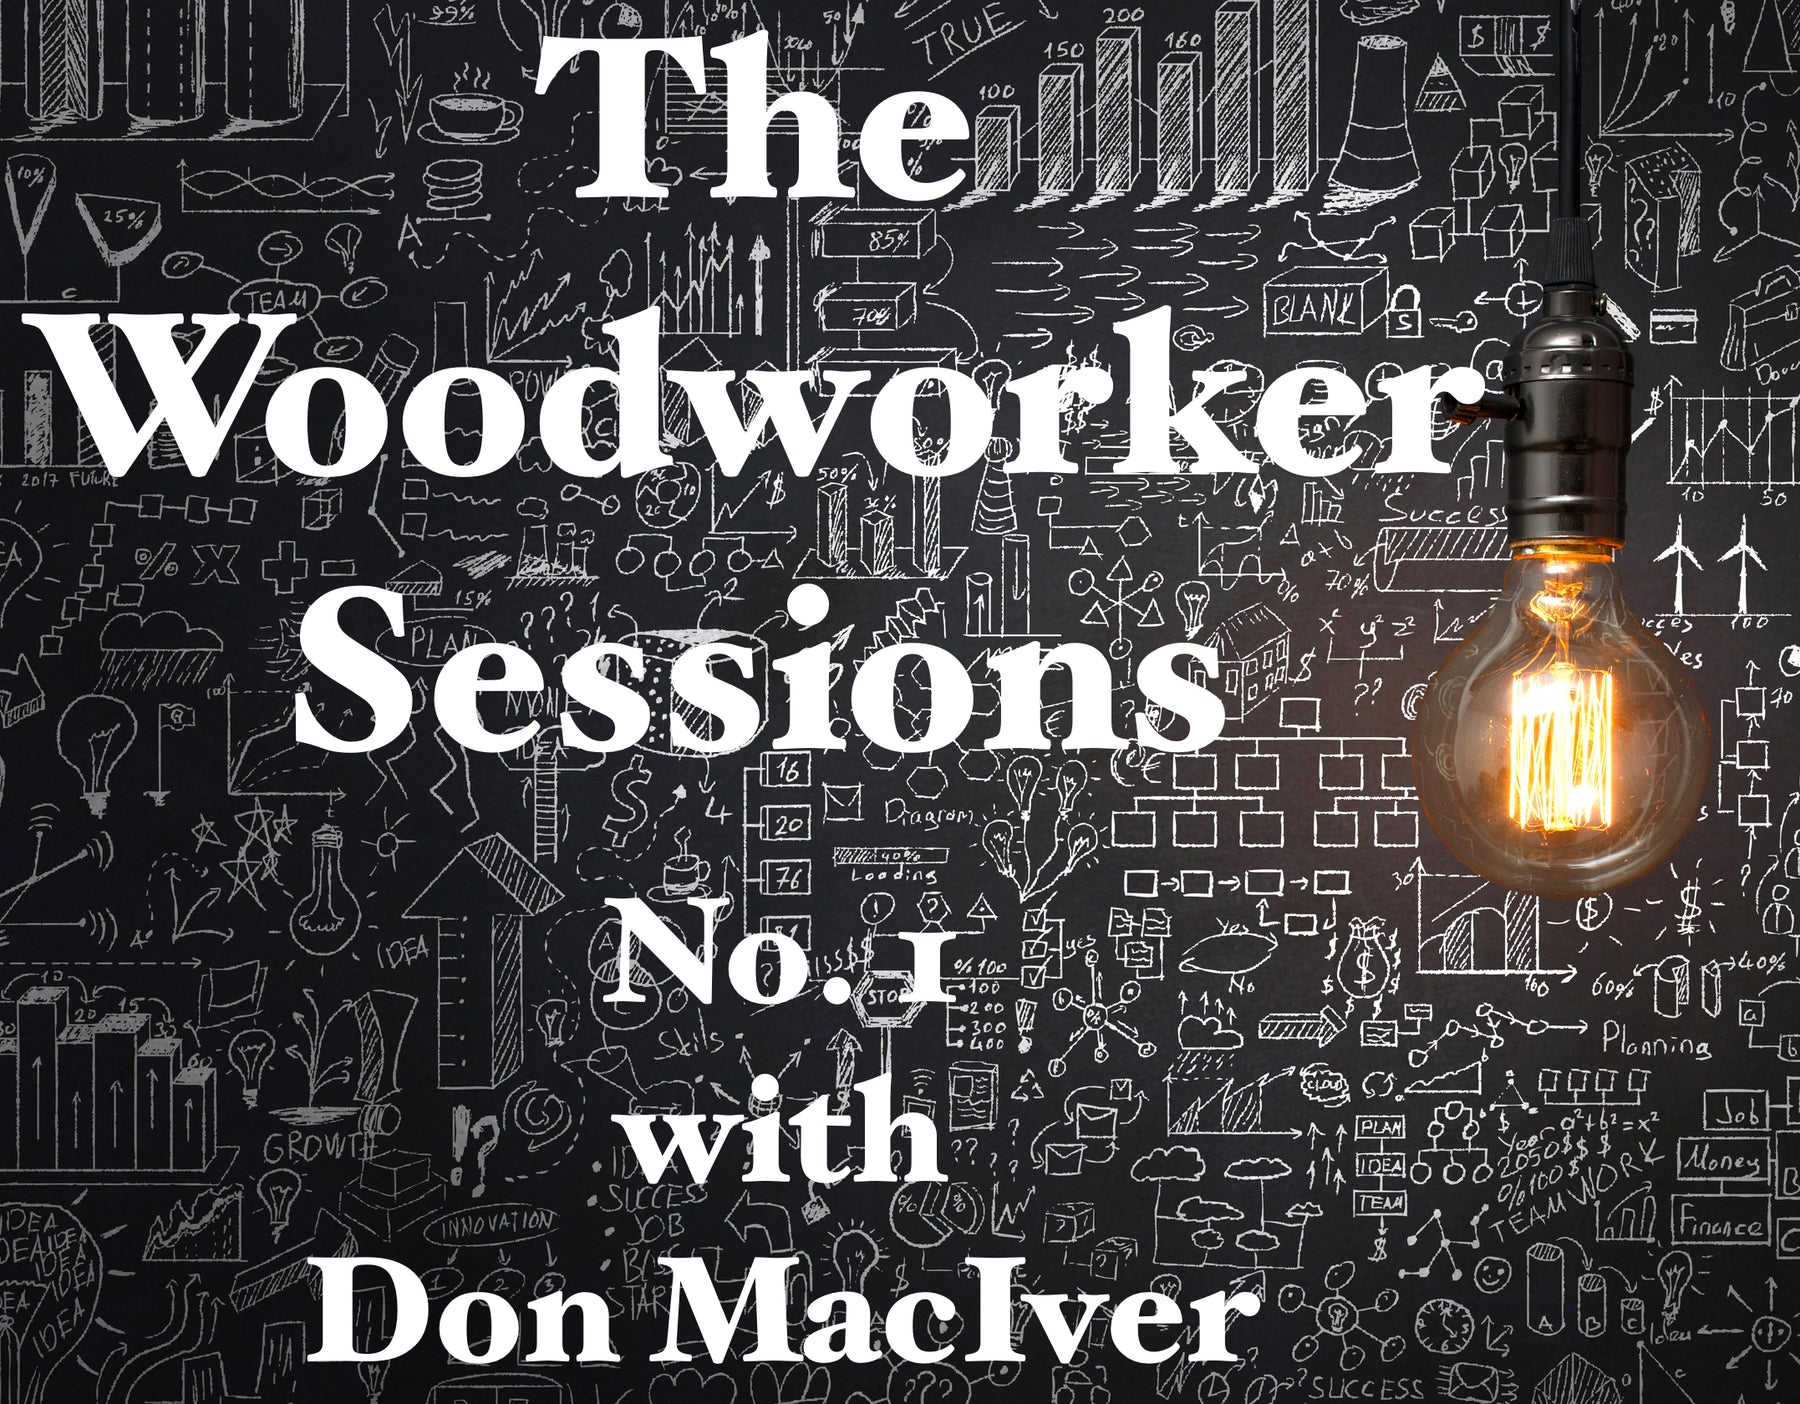 The Woodworker Sessions #1  -  10 Questions with Don MacIver of Stanford